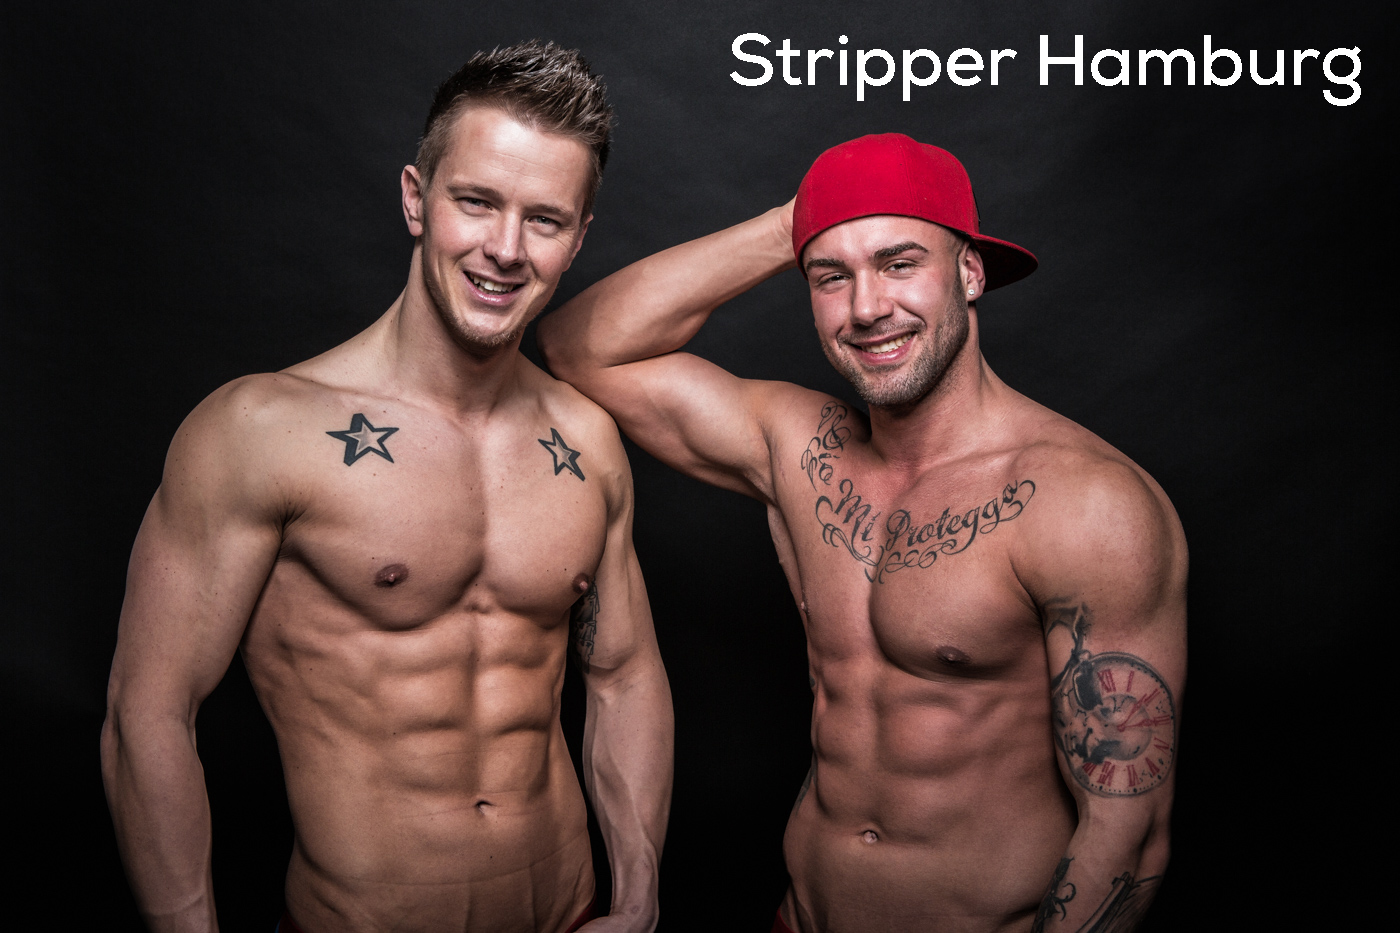 Stripper Hamburg buchen